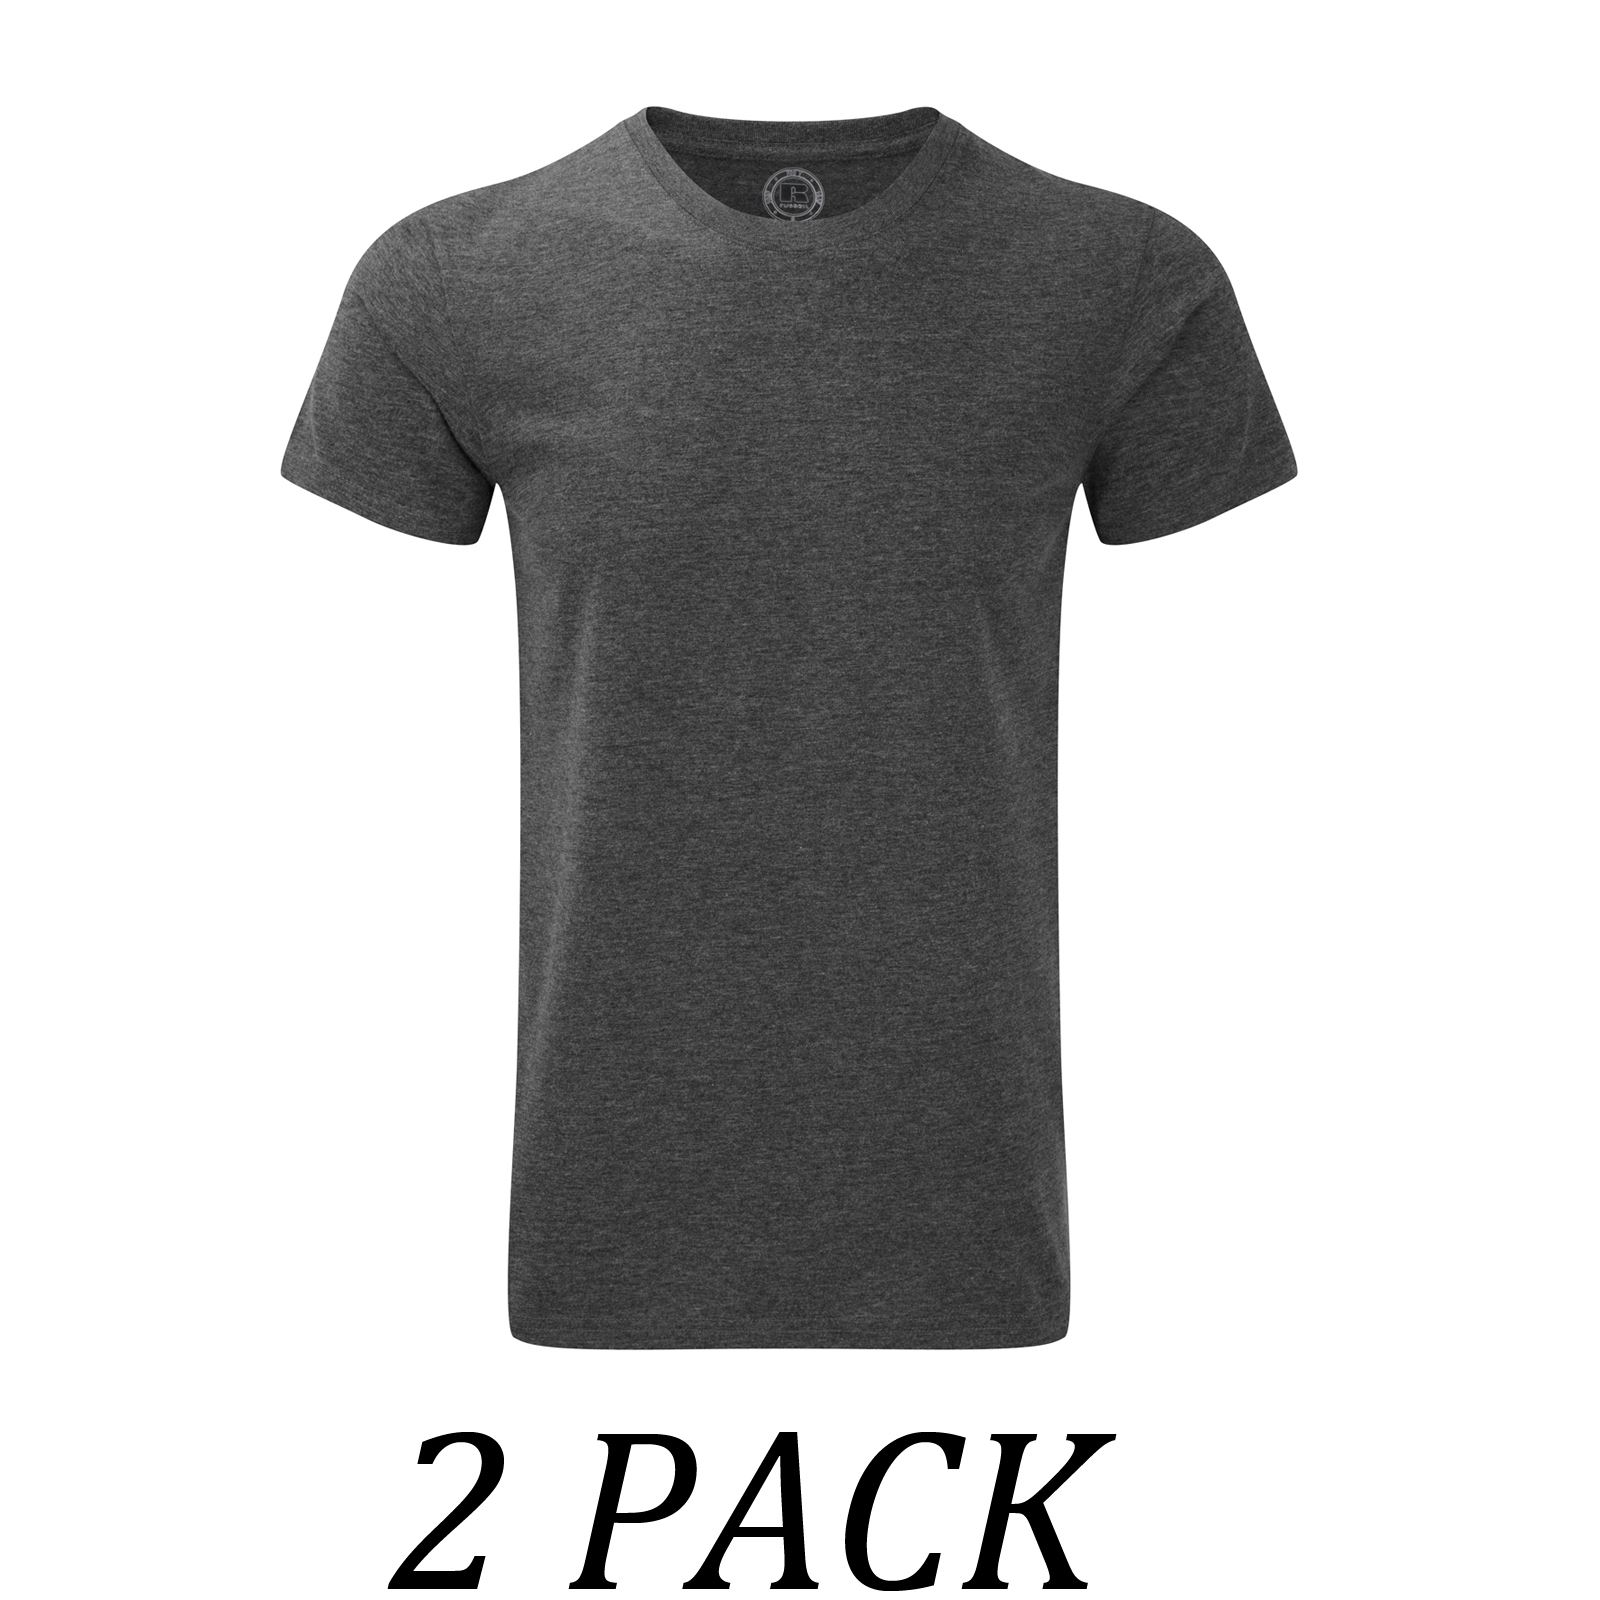 2 pack russell tshirts tops mens heavy duty t shirt crew for Heavy duty work t shirts